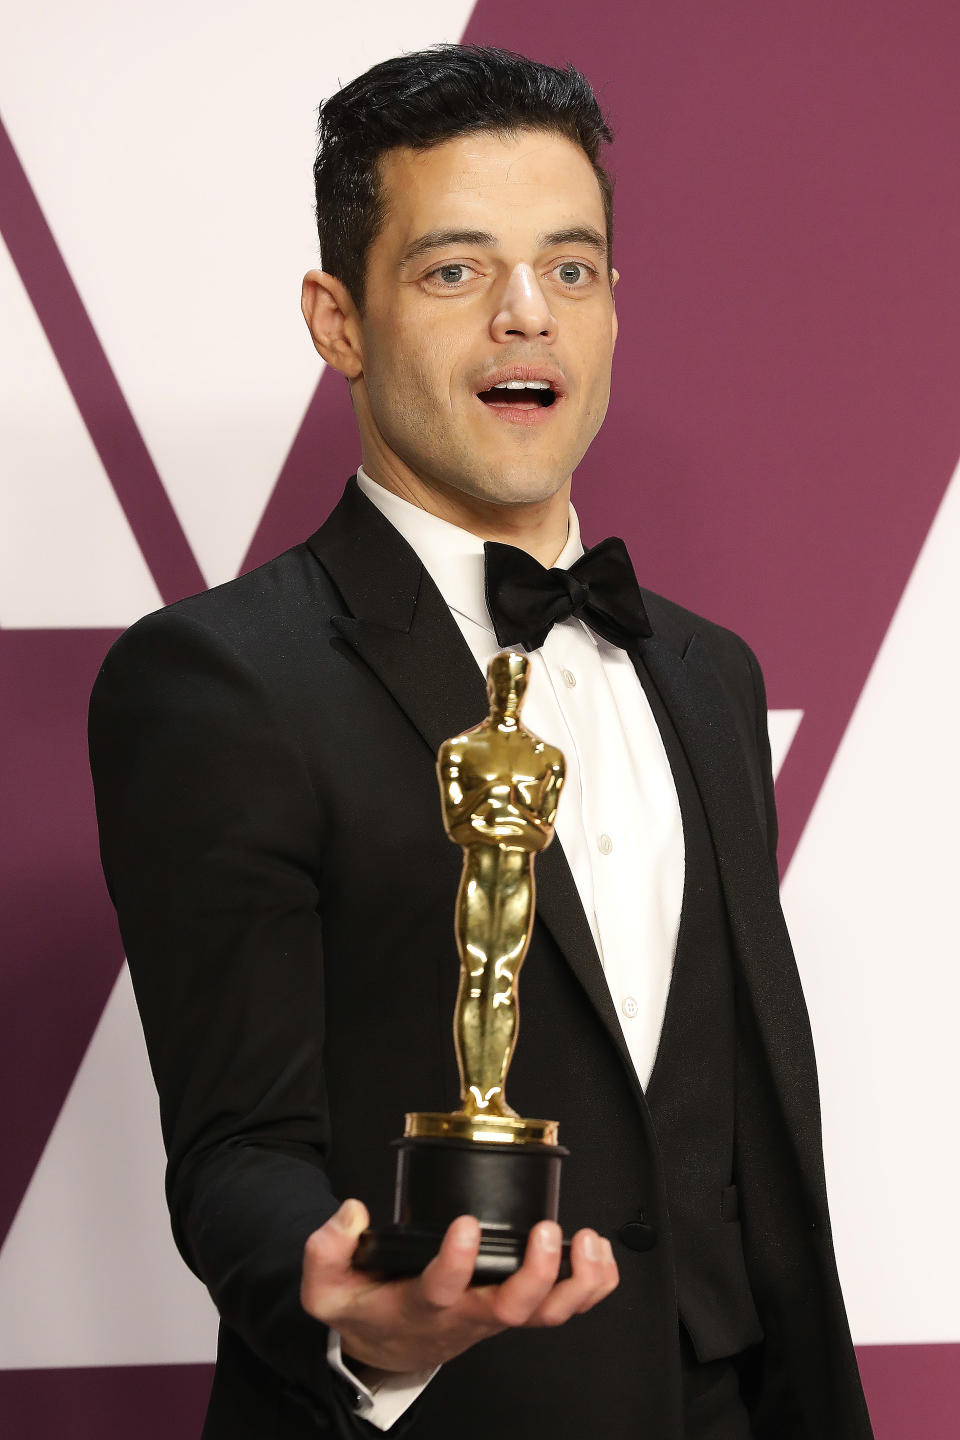 Rami Malek poses in the press room at the 91st Annual Academy Awards at the Dolby Theatre in Hollywood, California on February 24, 2019. (John Rasimus / Barcroft Media via Getty Images)